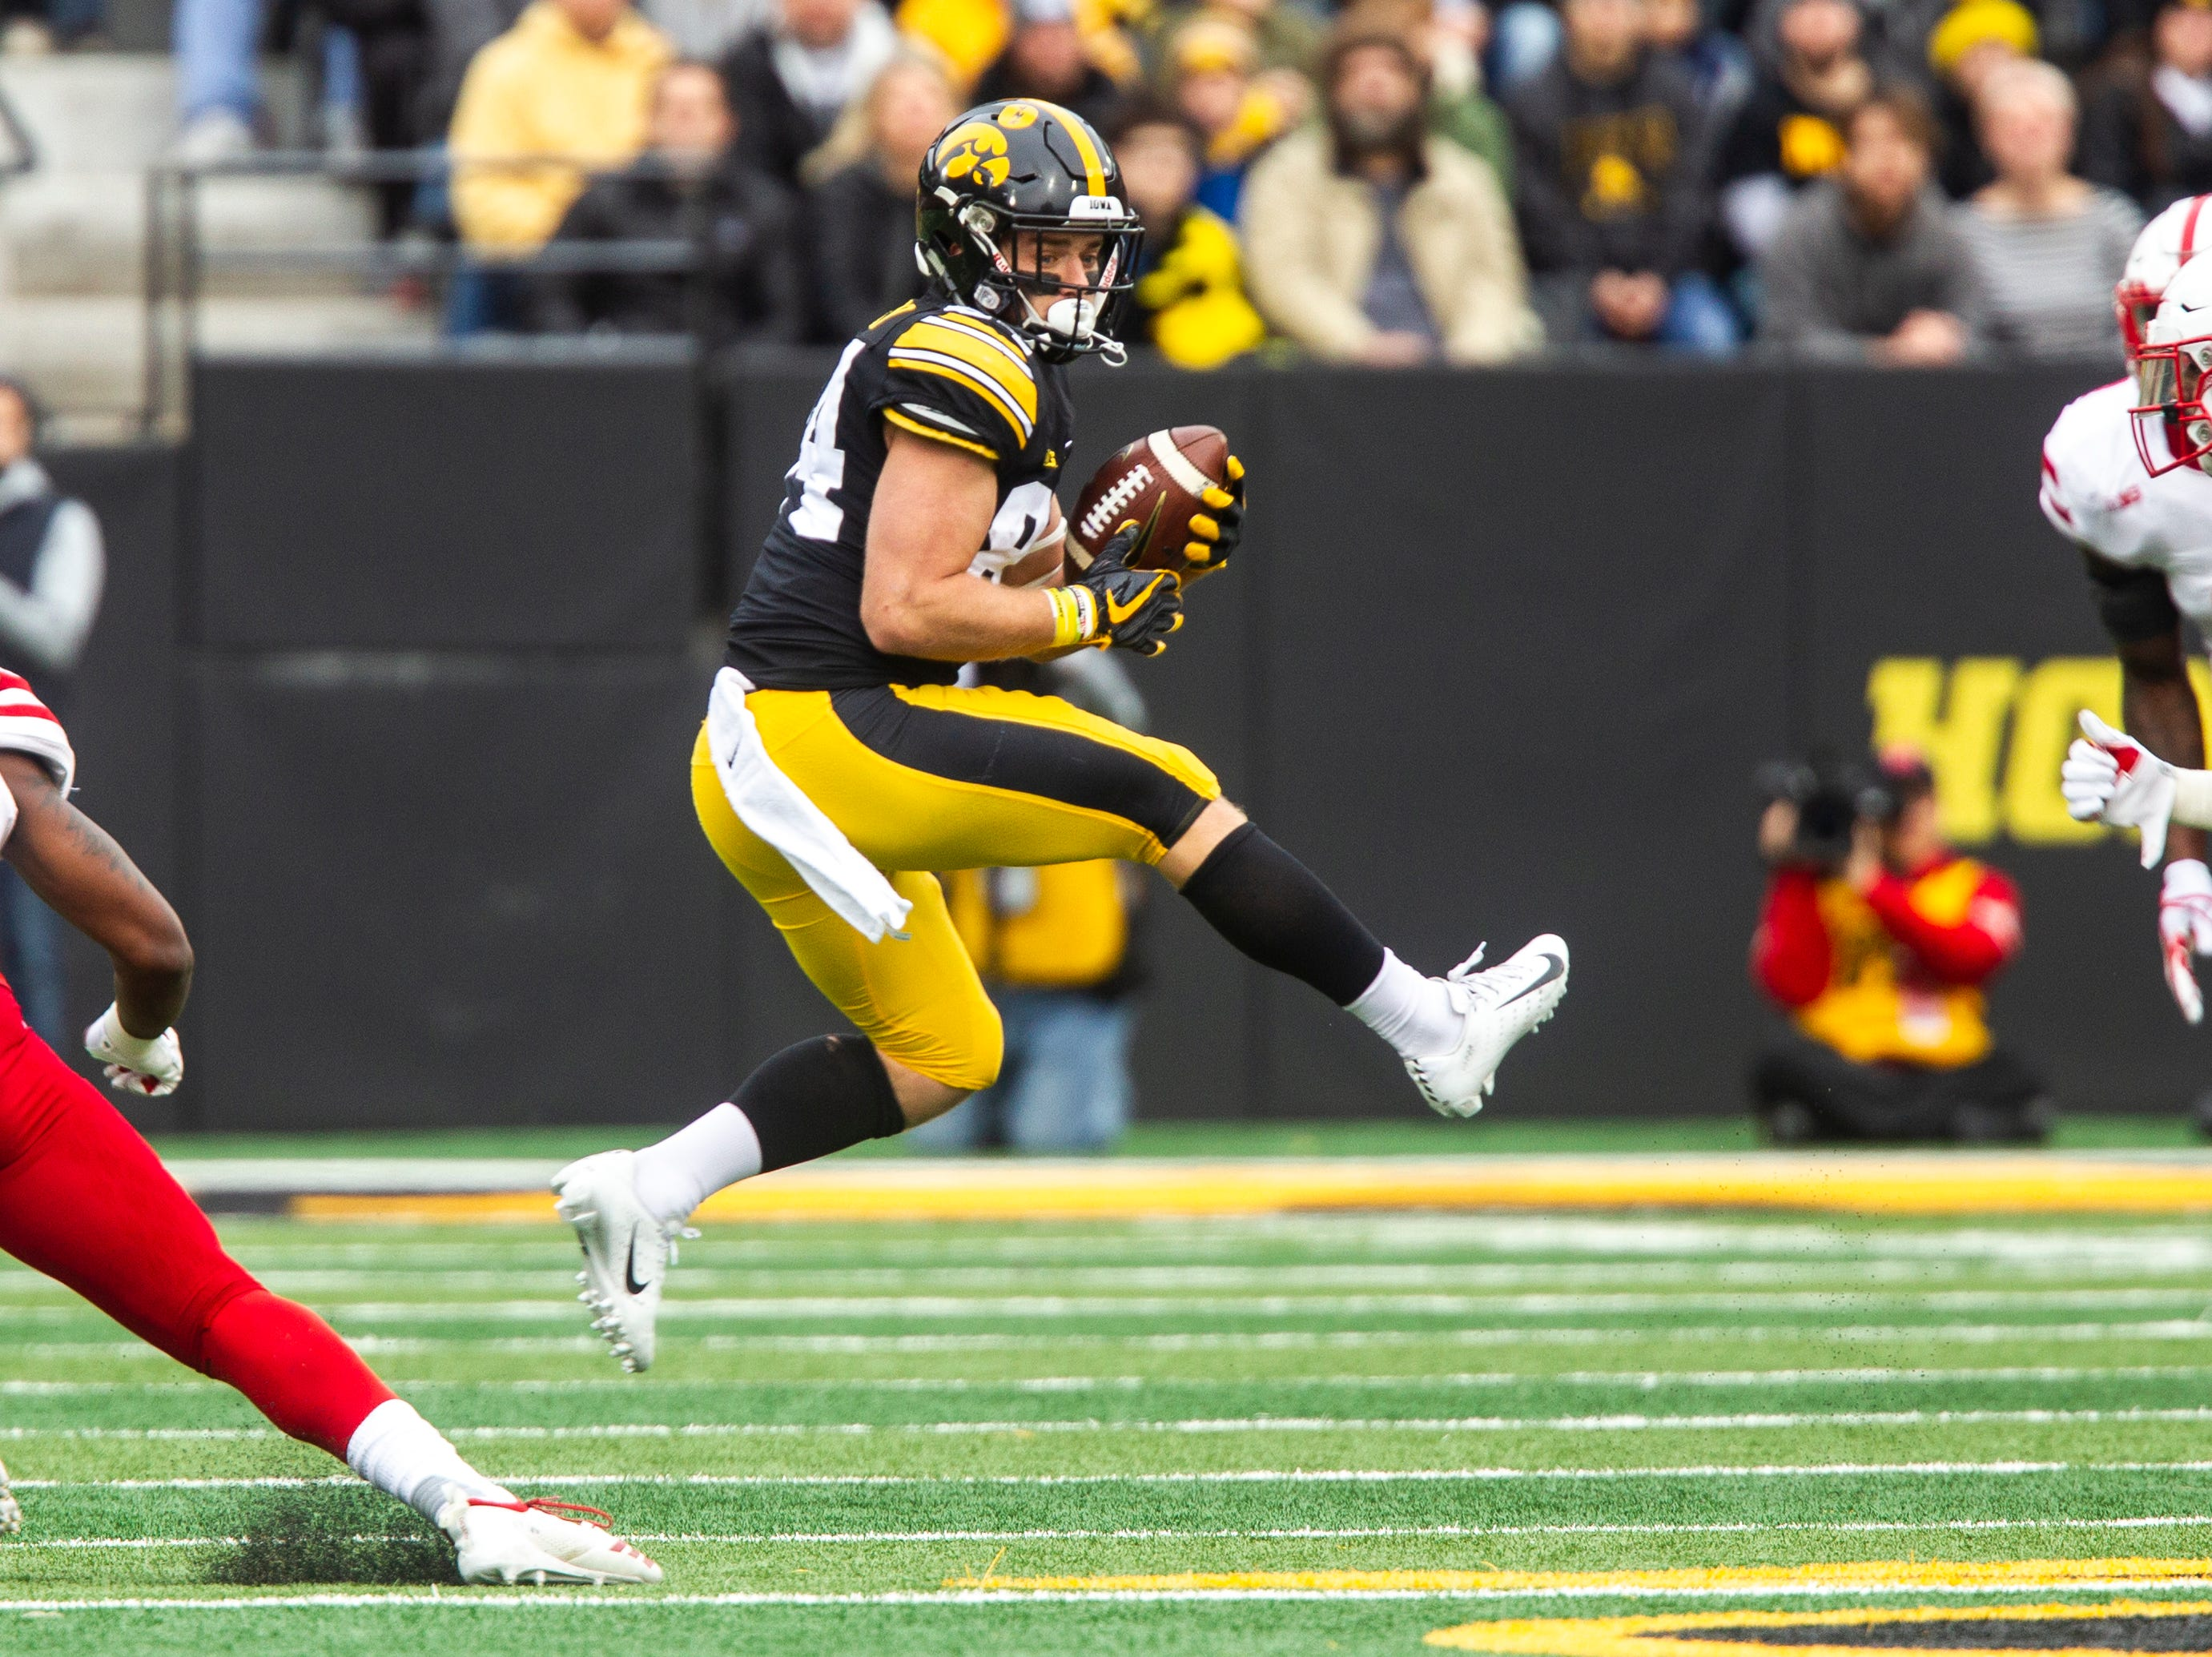 Iowa wide receiver Nick Easley (84) makes a jumping catch during a Big Ten Conference NCAA football game on Friday, Nov. 23, 2018, at Kinnick Stadium in Iowa City.